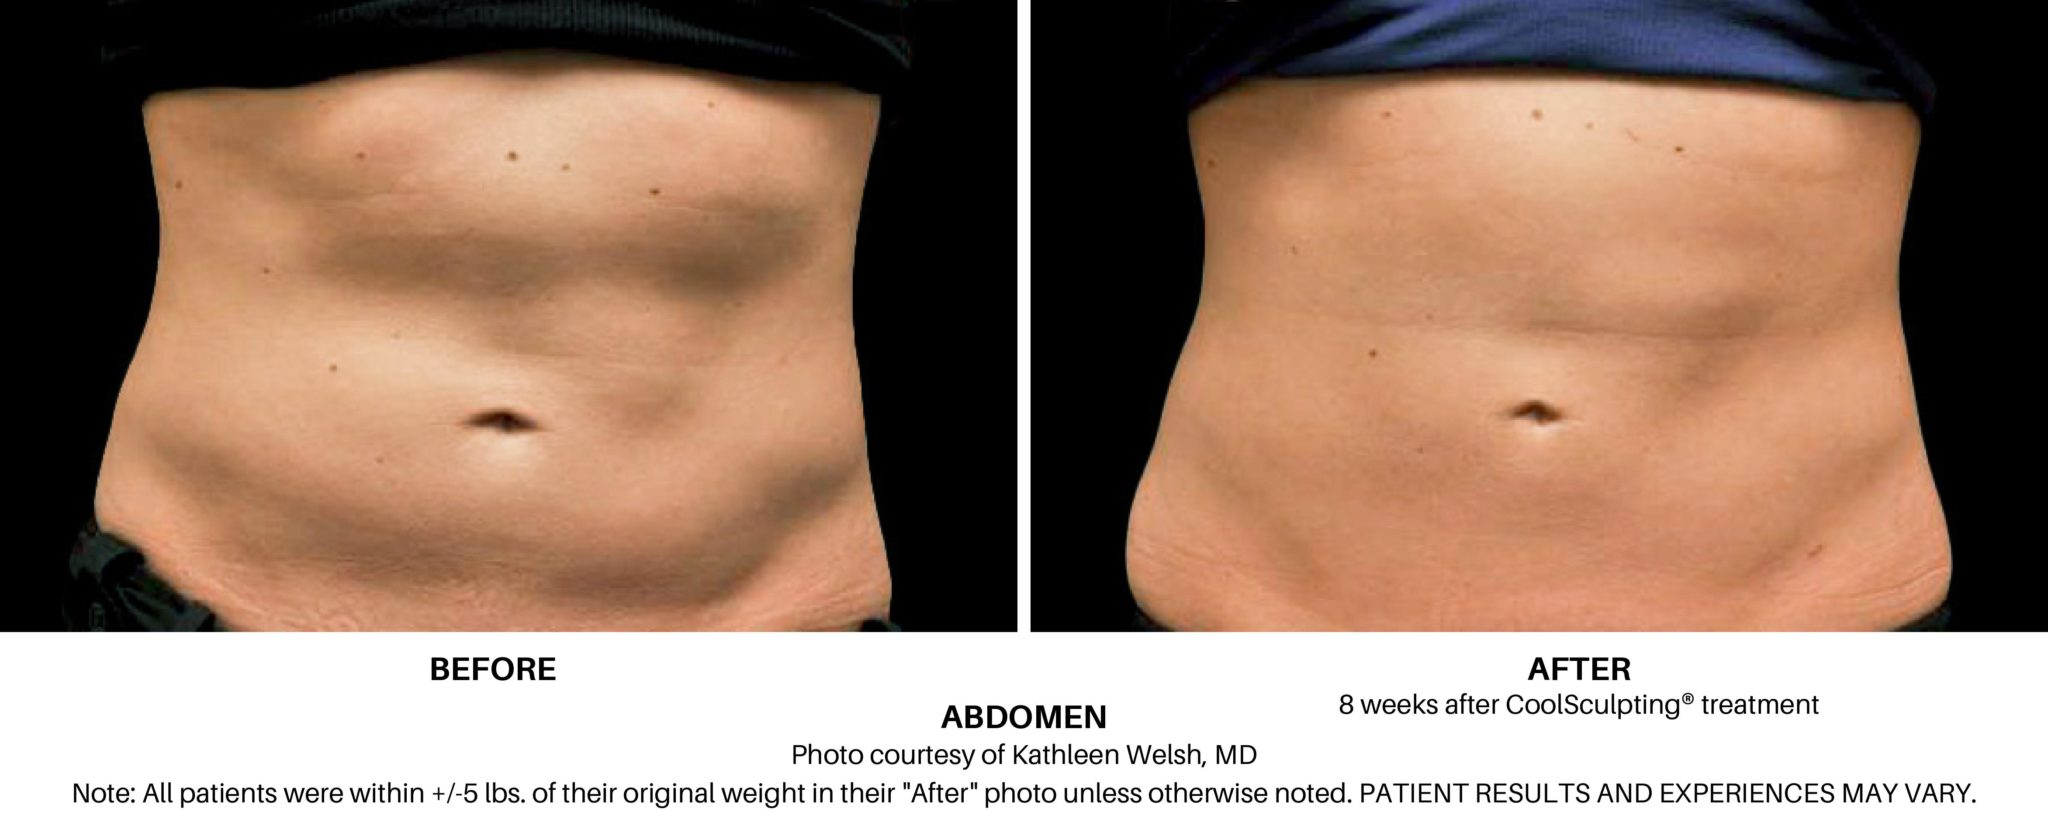 Coolsculpting Elite Before and After on Female Abdomen Always Beautiful Coolsculpting